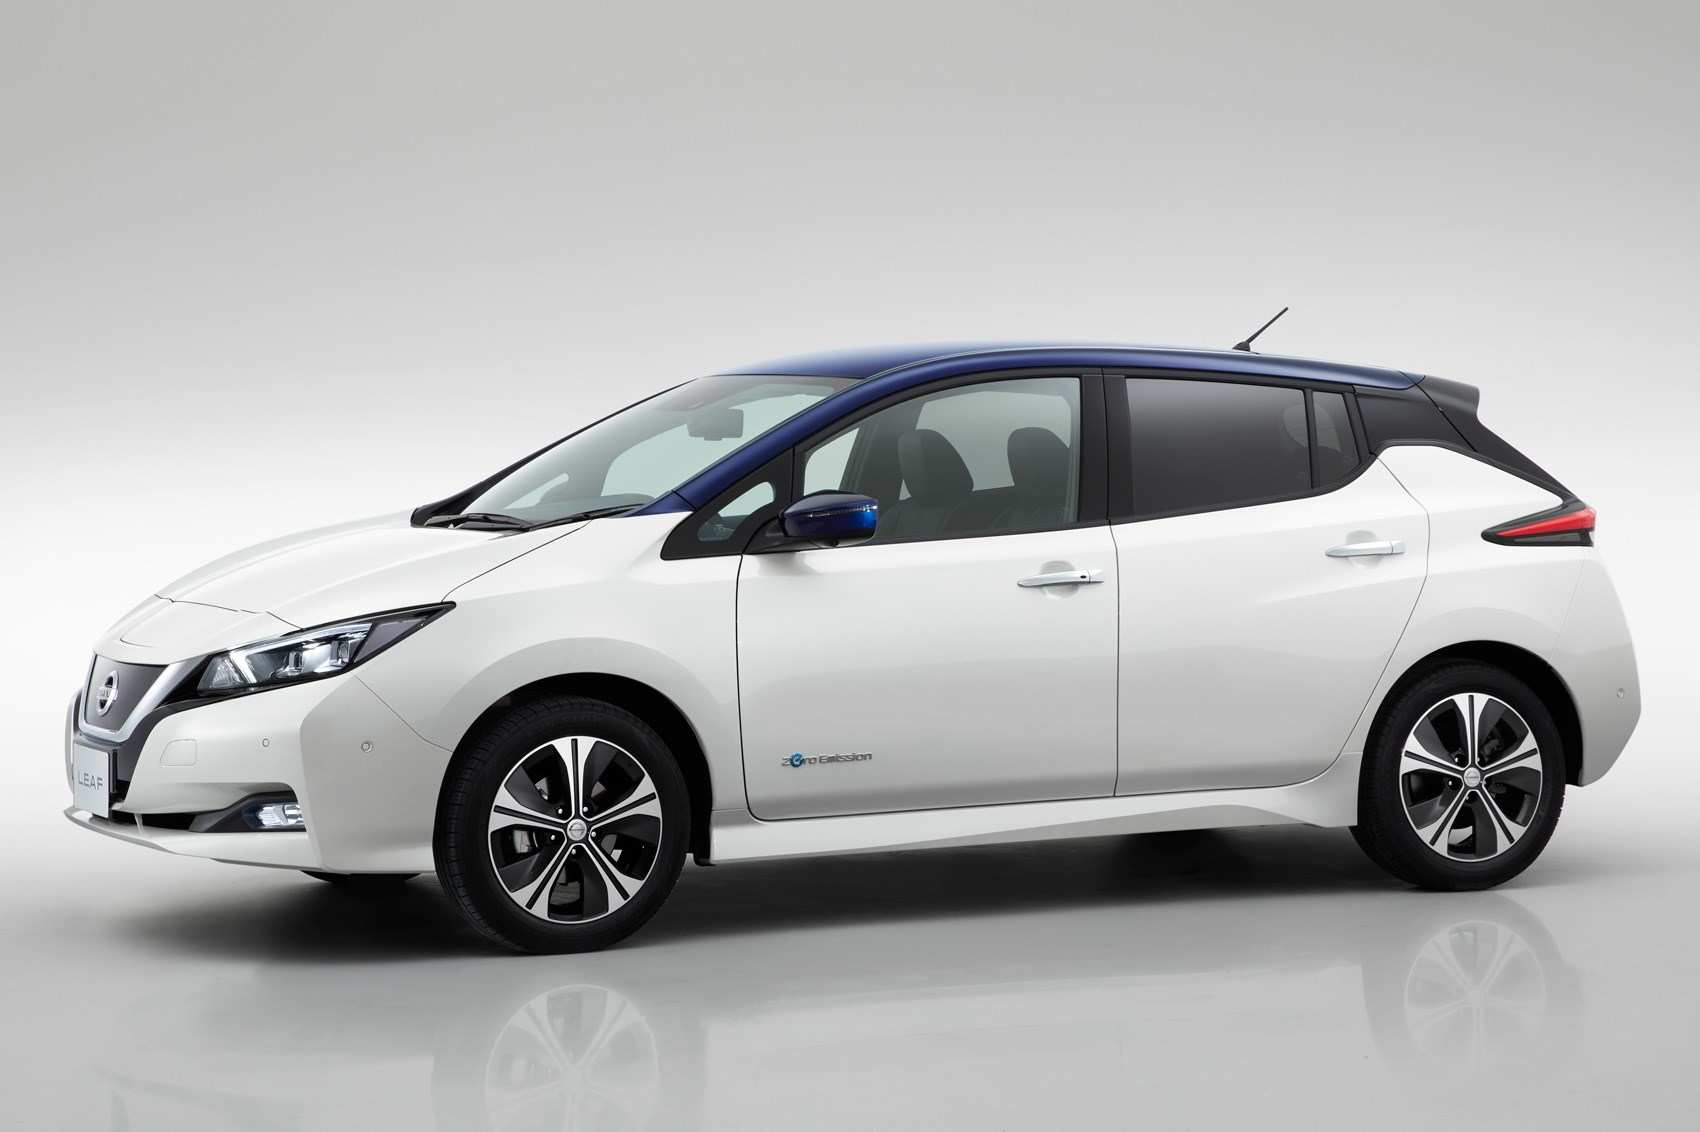 25 New Nissan Leaf 2020 Exterior Date Uk Redesign for Nissan Leaf 2020 Exterior Date Uk